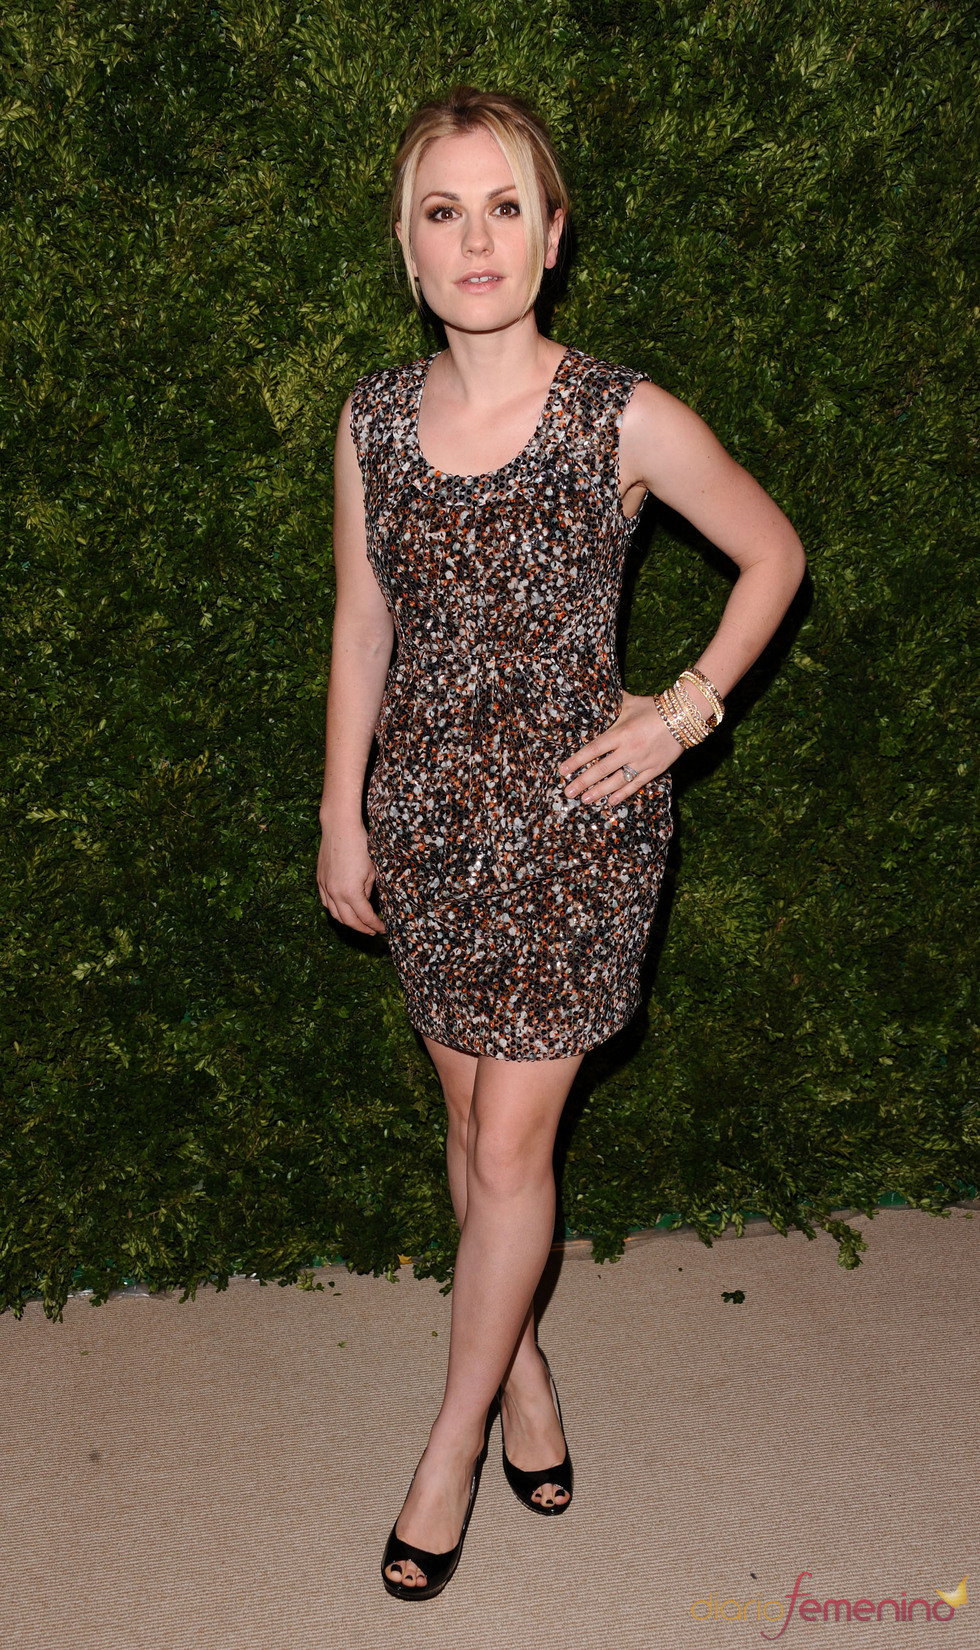 Premios Vogue Fashion Fund 2010 con Anna Paquin